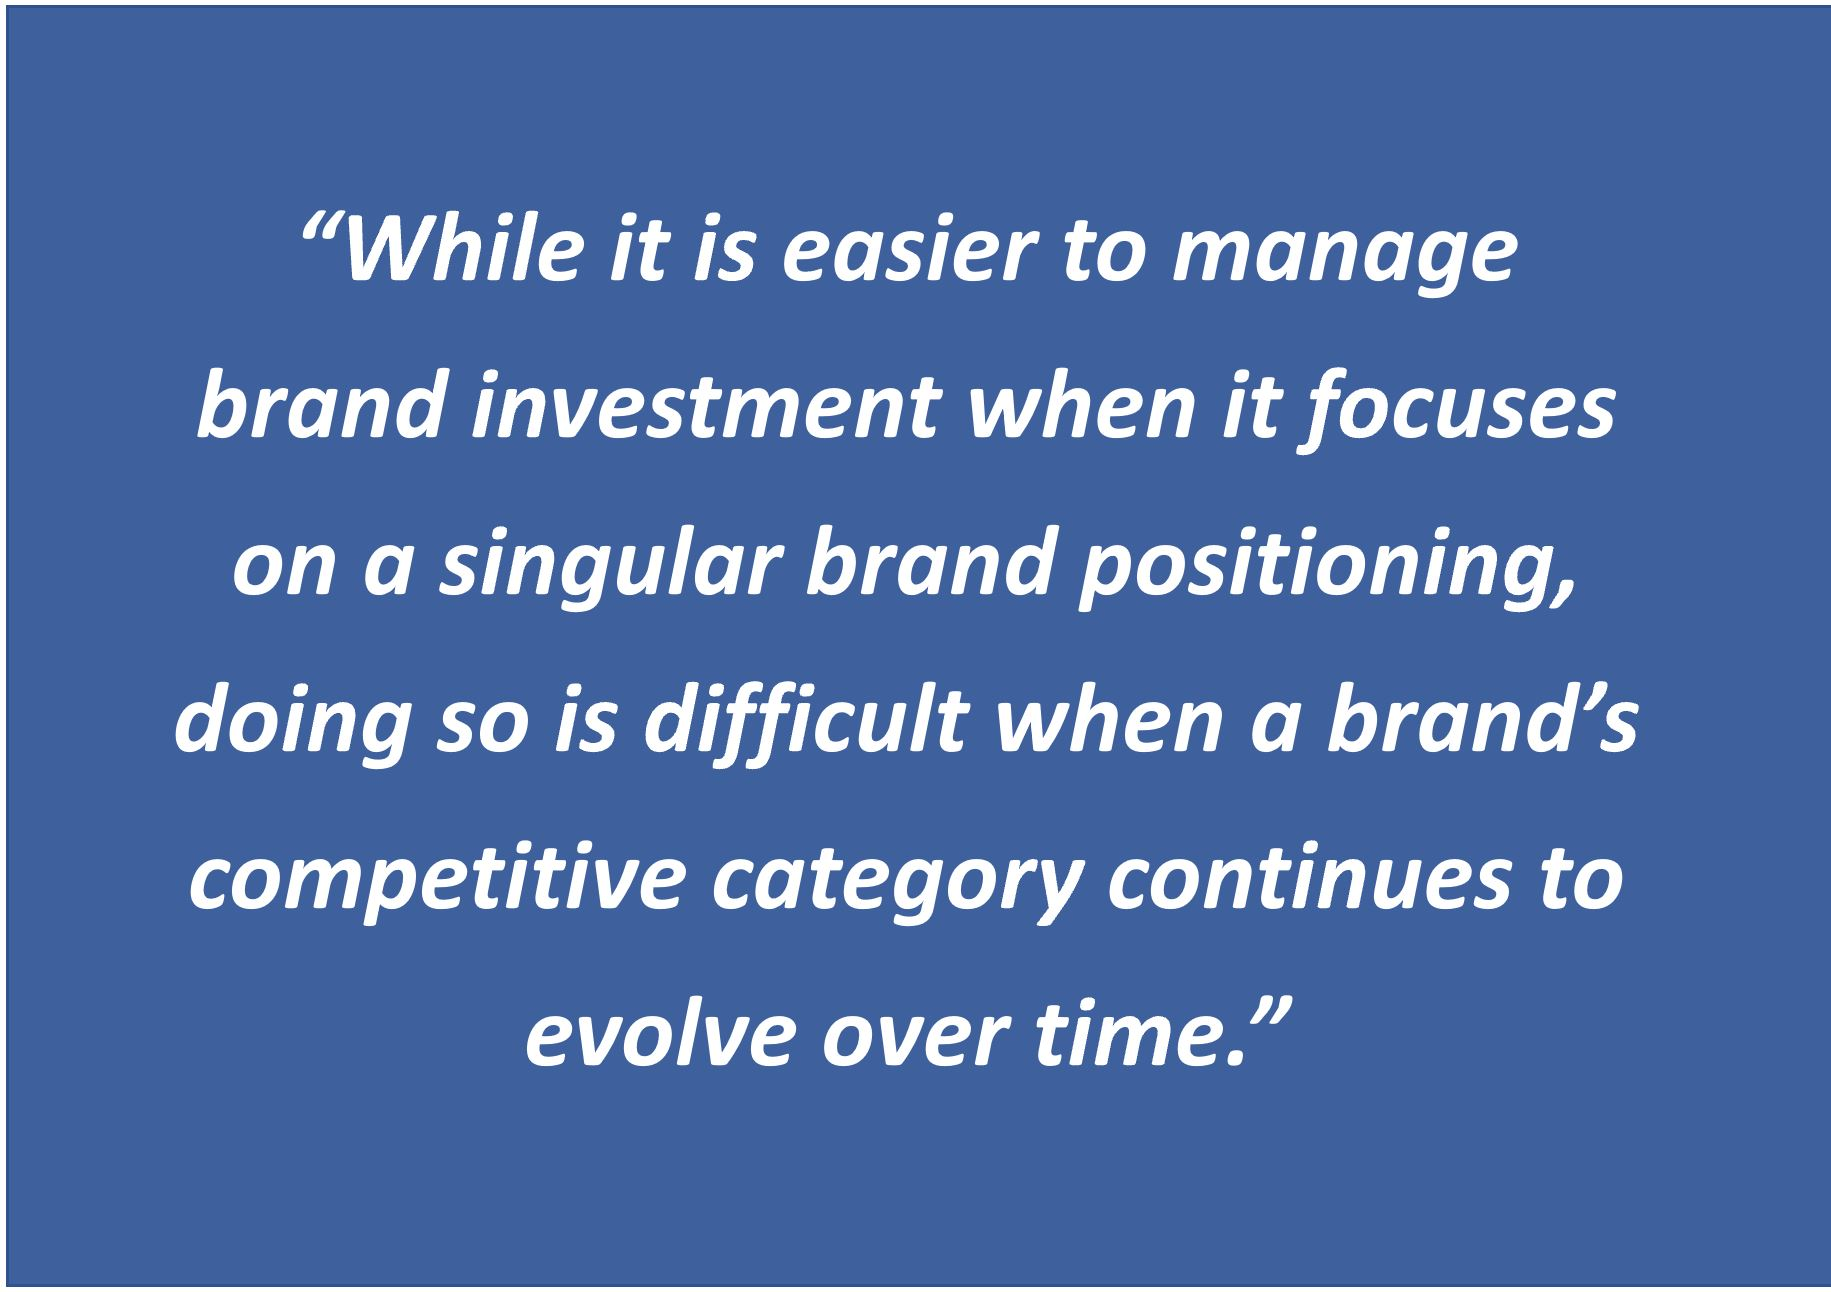 """Pictured: A quote saying """"While it is easier to manage brand investment when it focuses on a singular brand positioning, doing so is difficult when a brand's competitive category continues to evolve over time""""."""